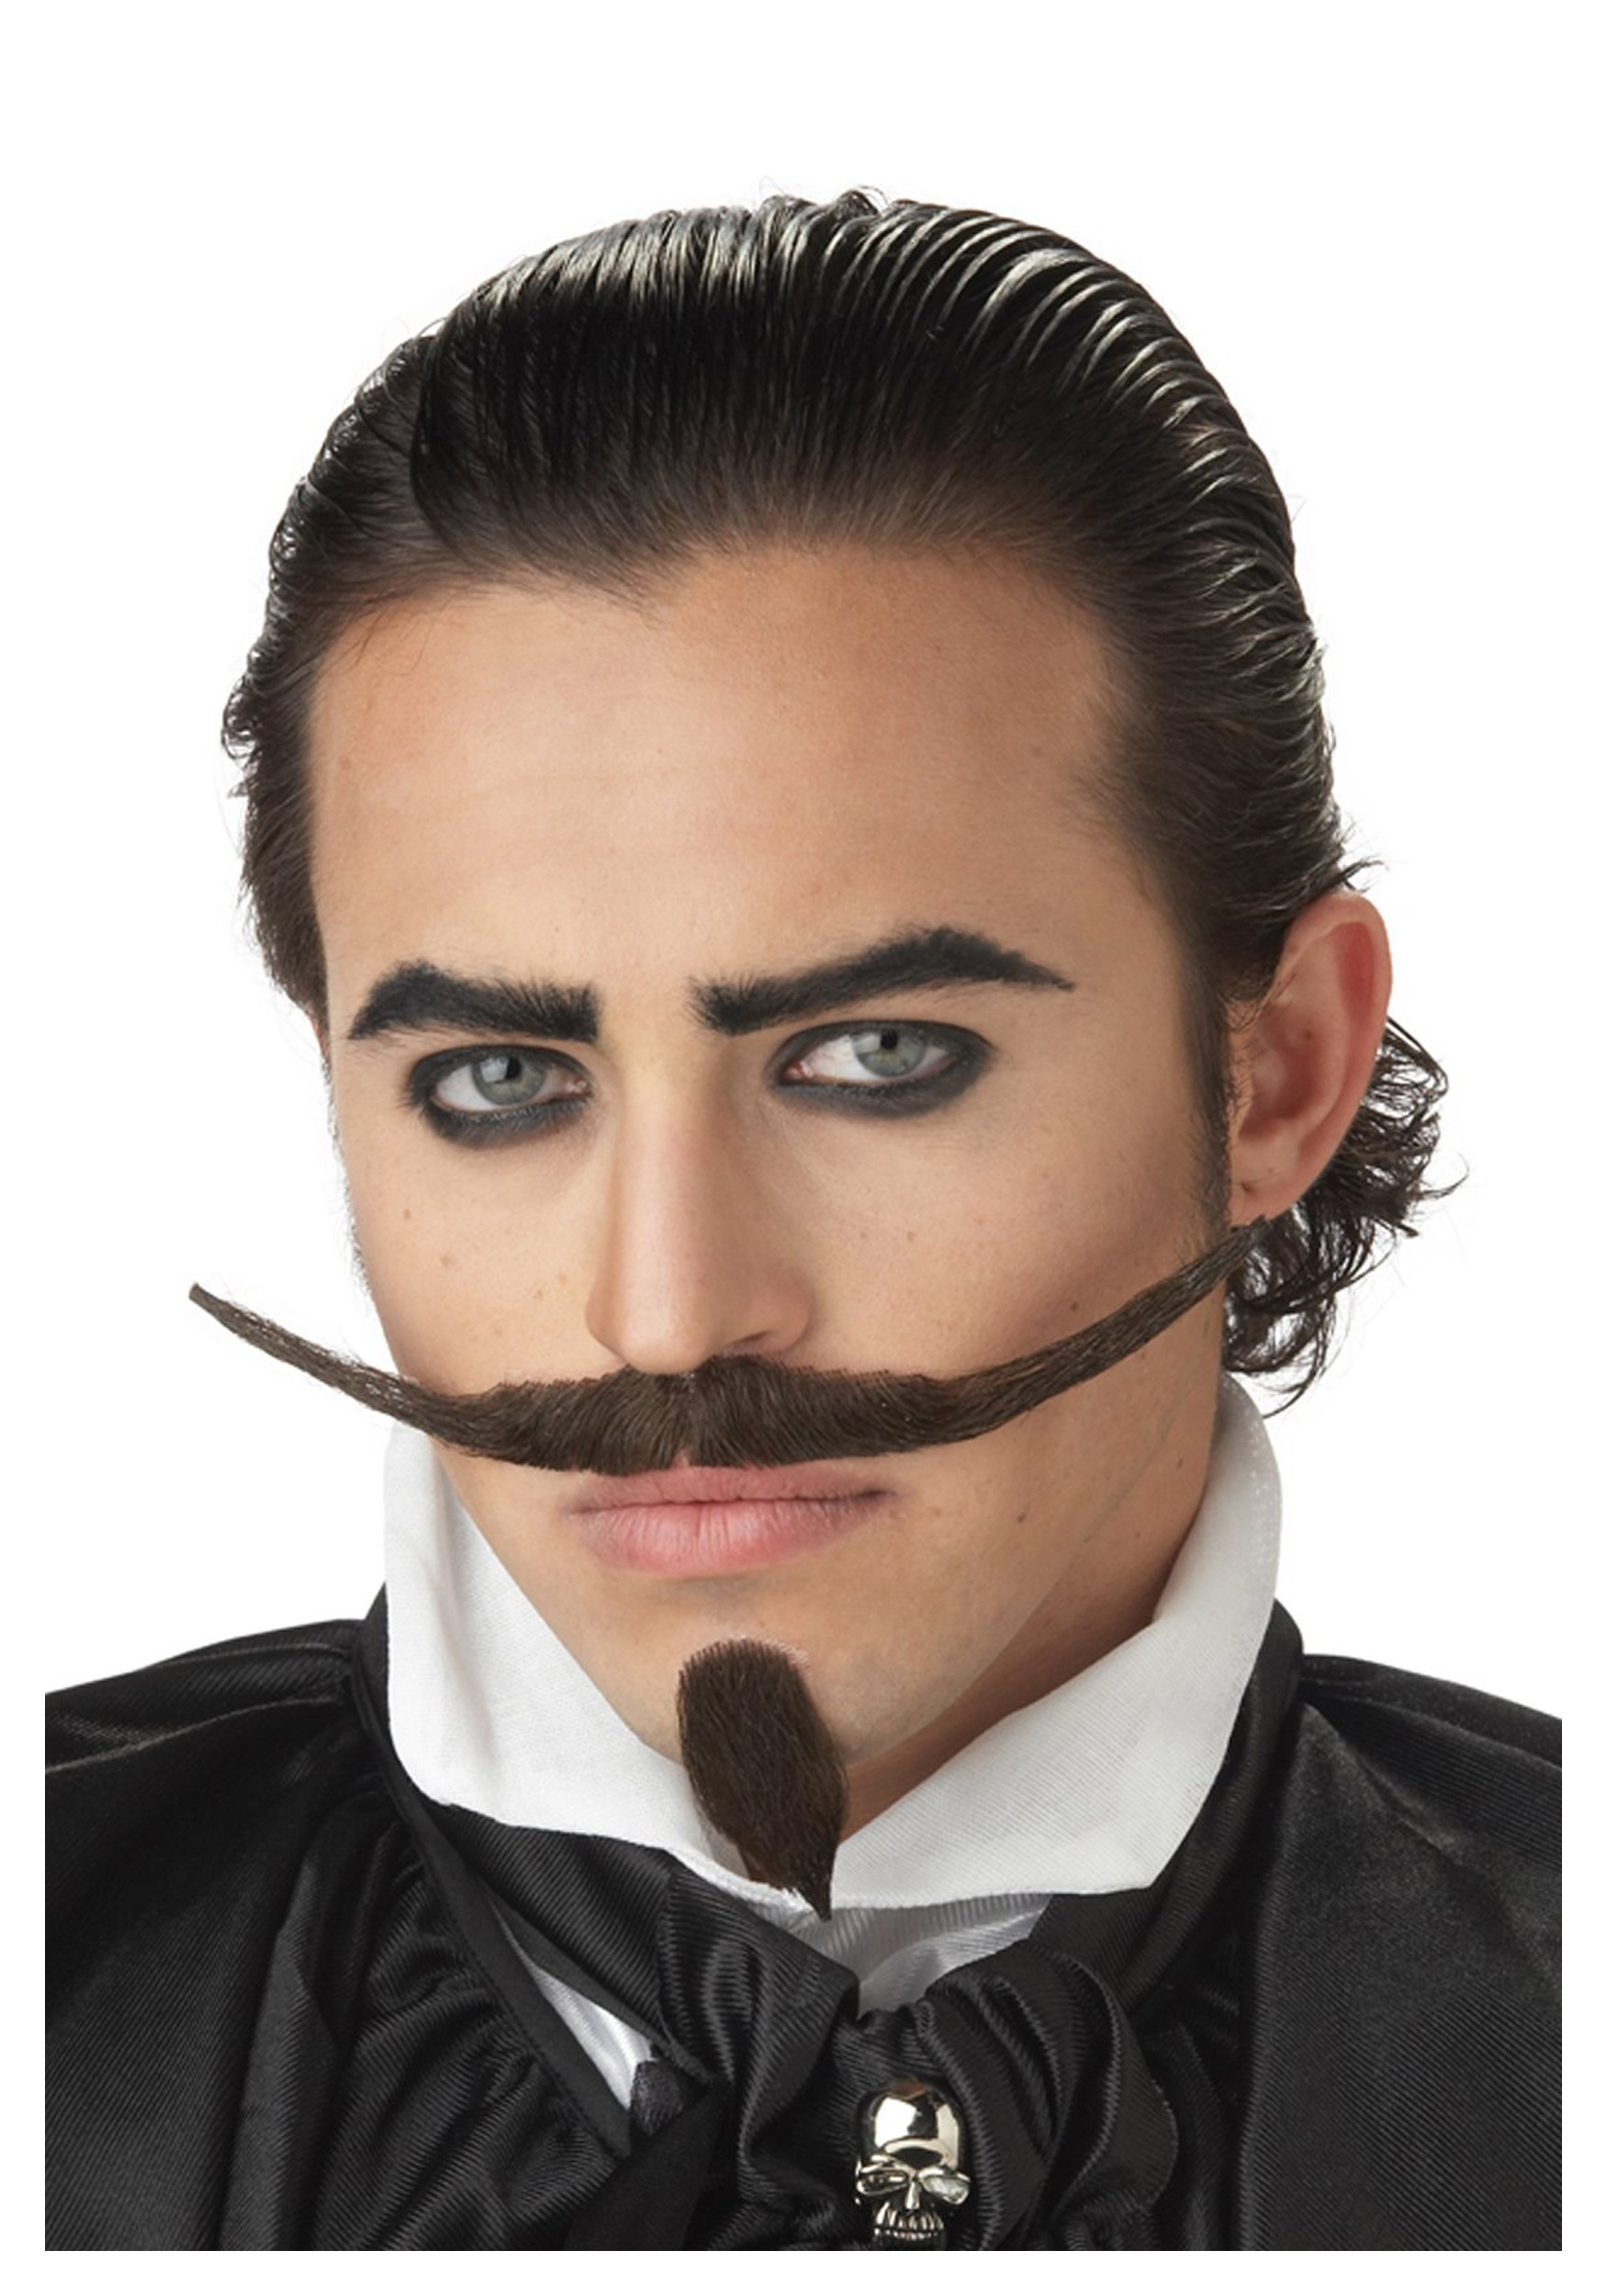 Musketeer Mustache and Chin Patch  sc 1 st  Halloween Costumes & Musketeer Mustache and Chin Patch - Halloween Costumes